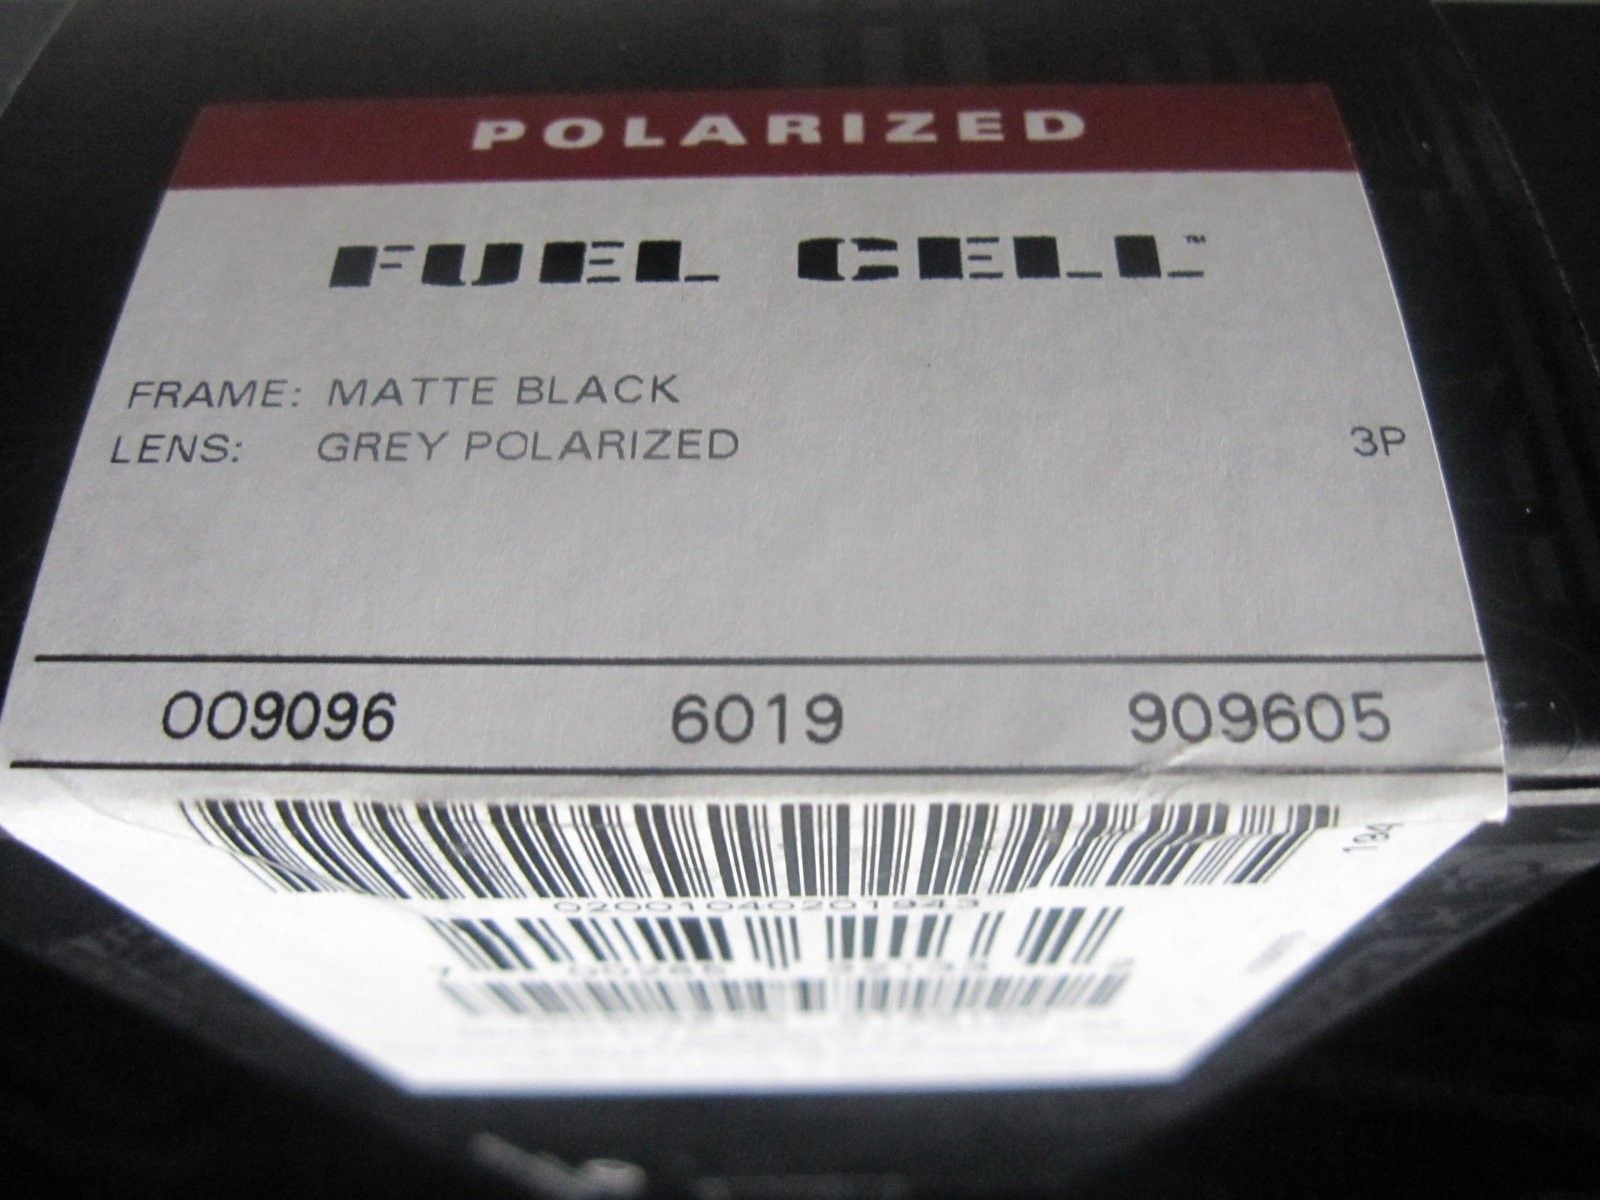 BNIB Fuel Cell Matte Black/Grey Polarized - SKU 9096-05 - IMG_5182.JPG